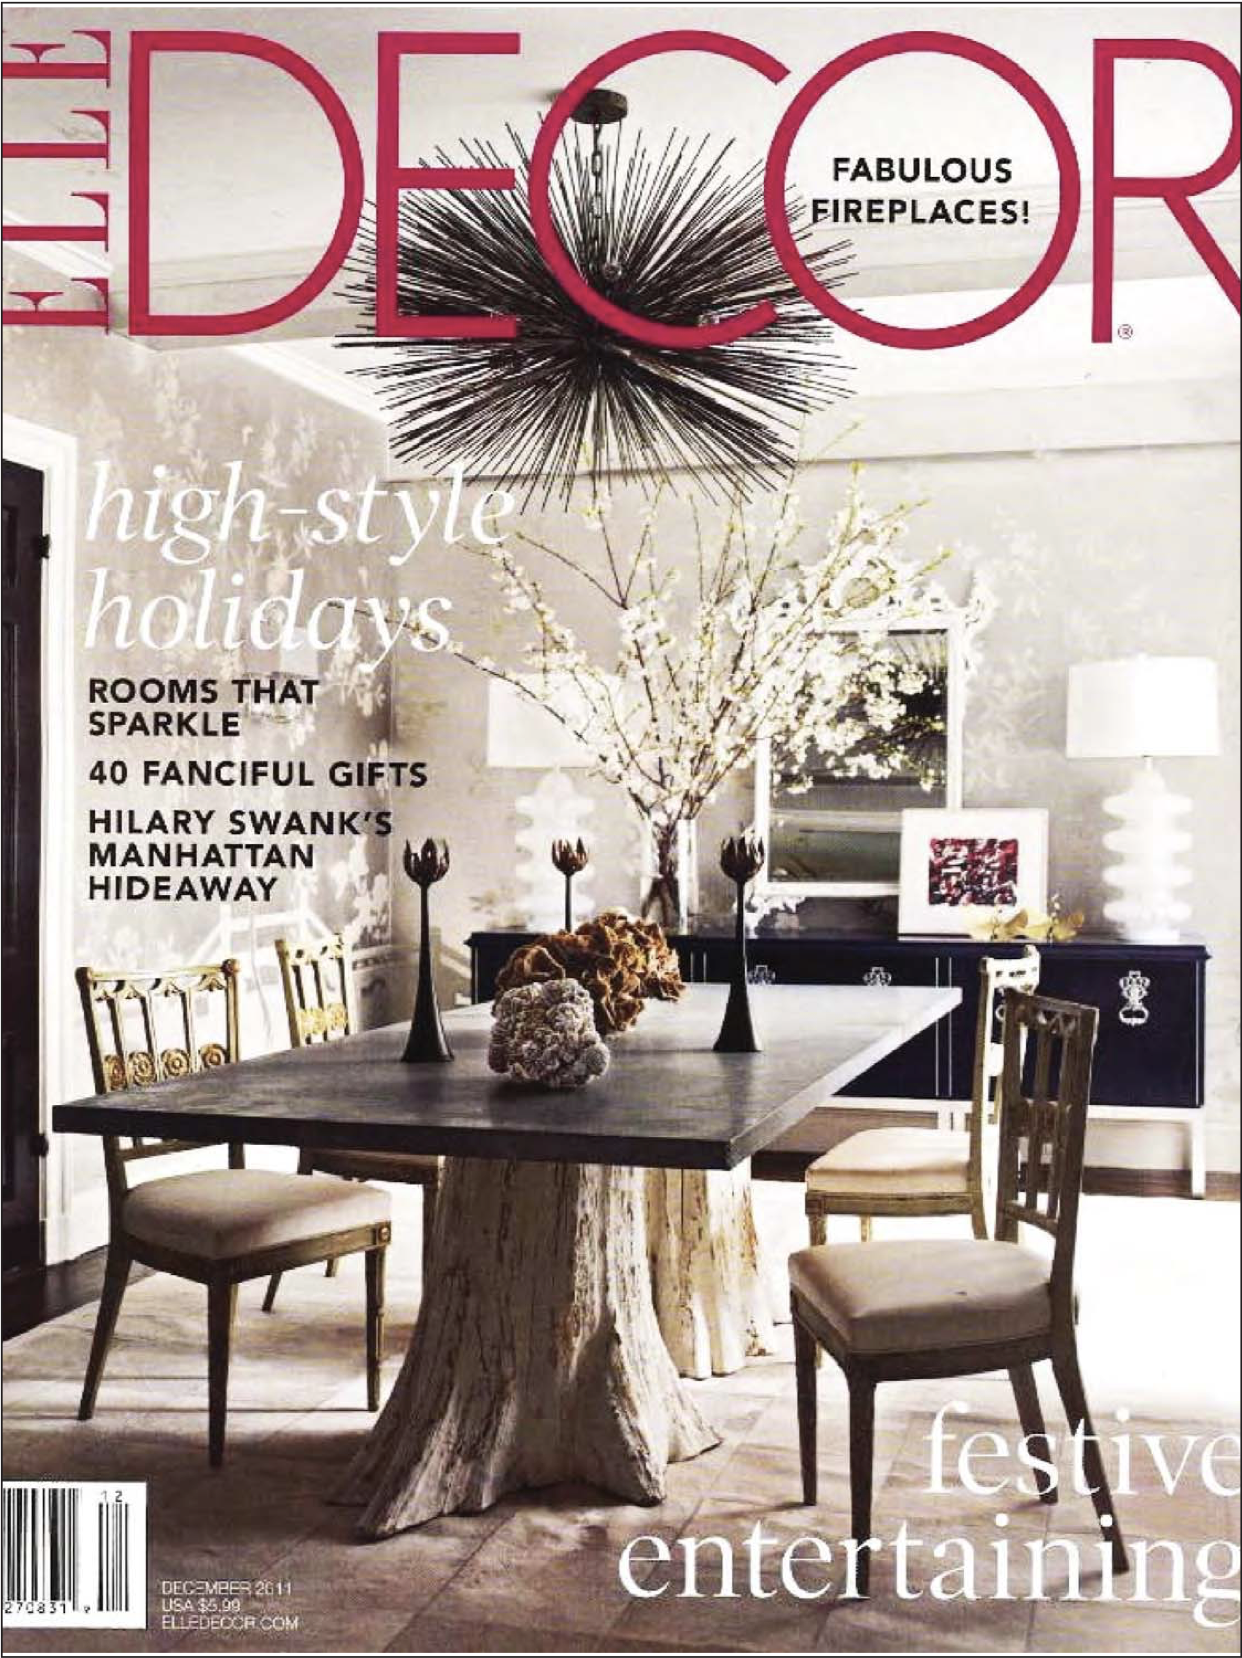 """Fleur, a side table by Farrago Designfor  Bespoke Global  featured in the print version of  Elle Decor  - a global shelter magazine from Dec. 2011 featuring the works of distinguished furniture designers under the category of """"Whats Hot"""""""